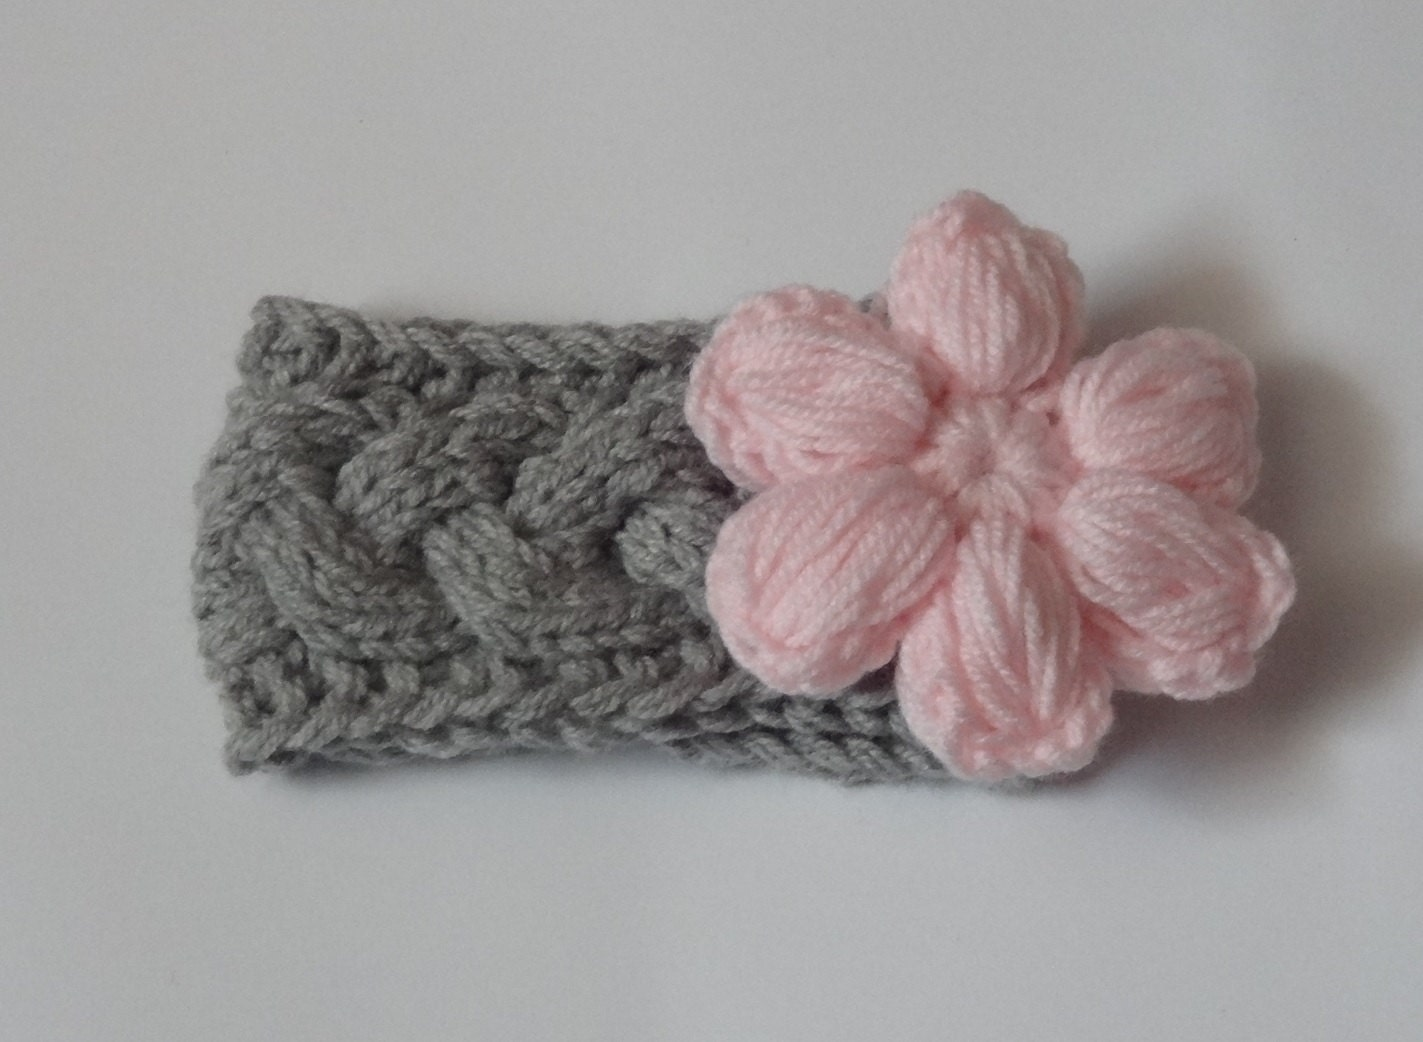 Knitting Headband For Baby : Knit baby headband cable